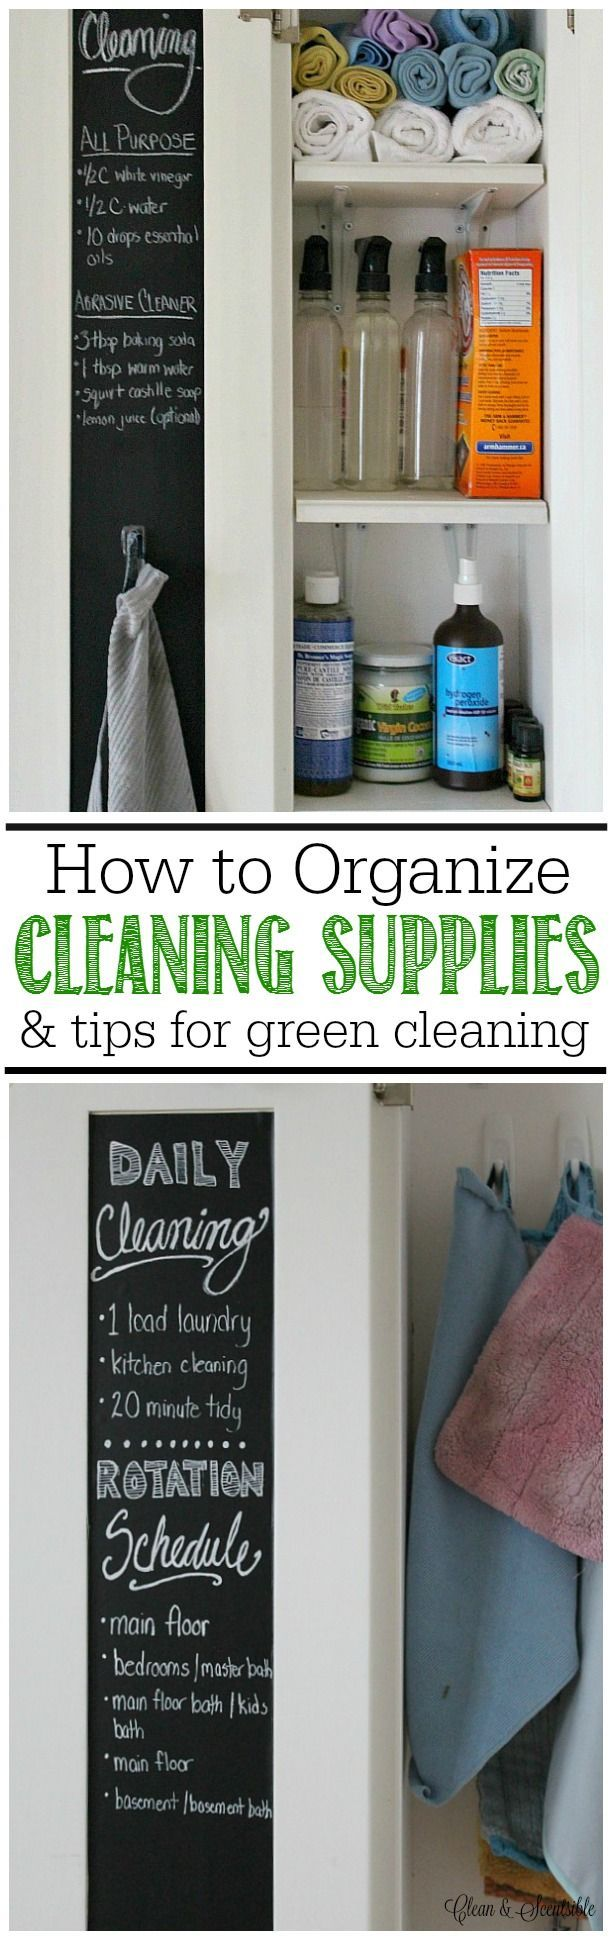 how to clean and organize house fast